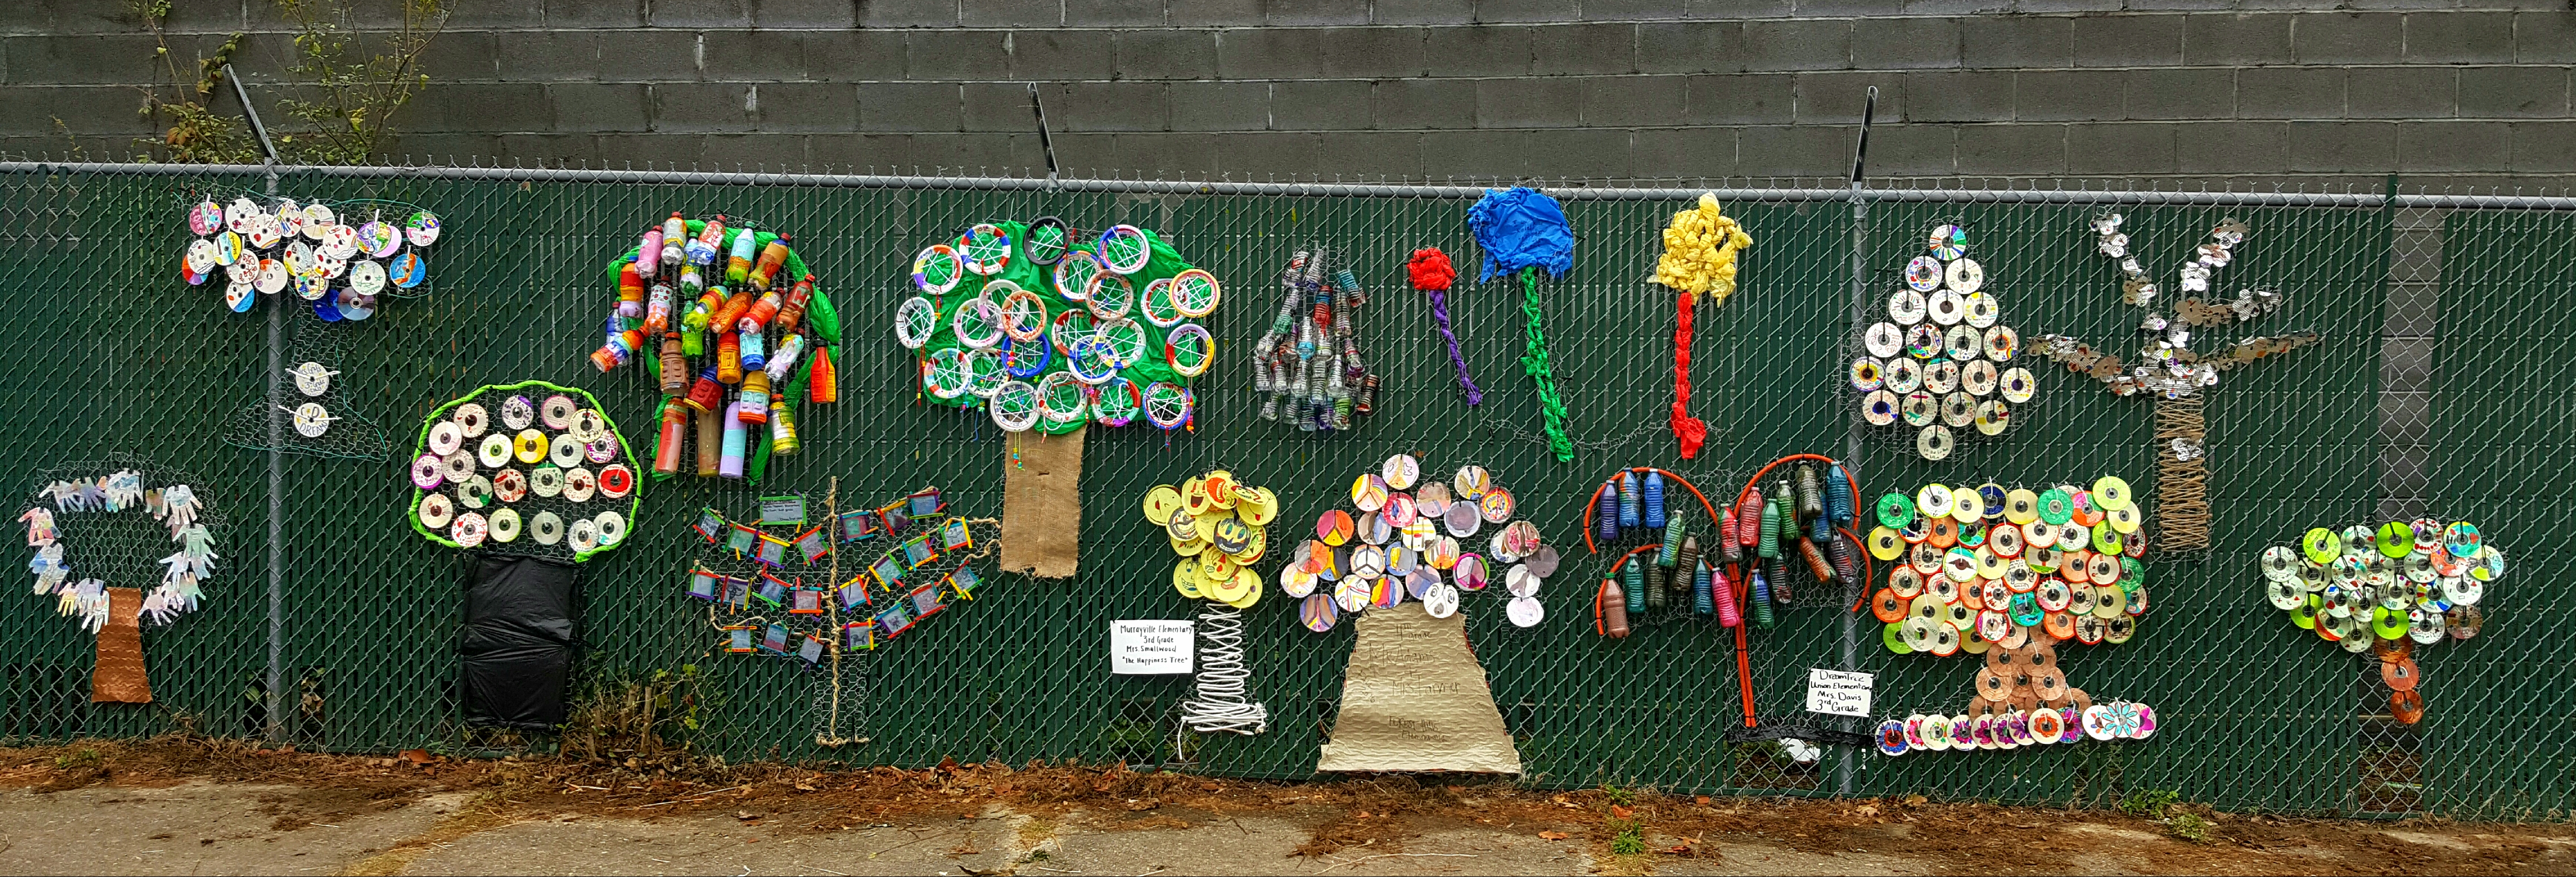 Visual Arts Projects For Elementary